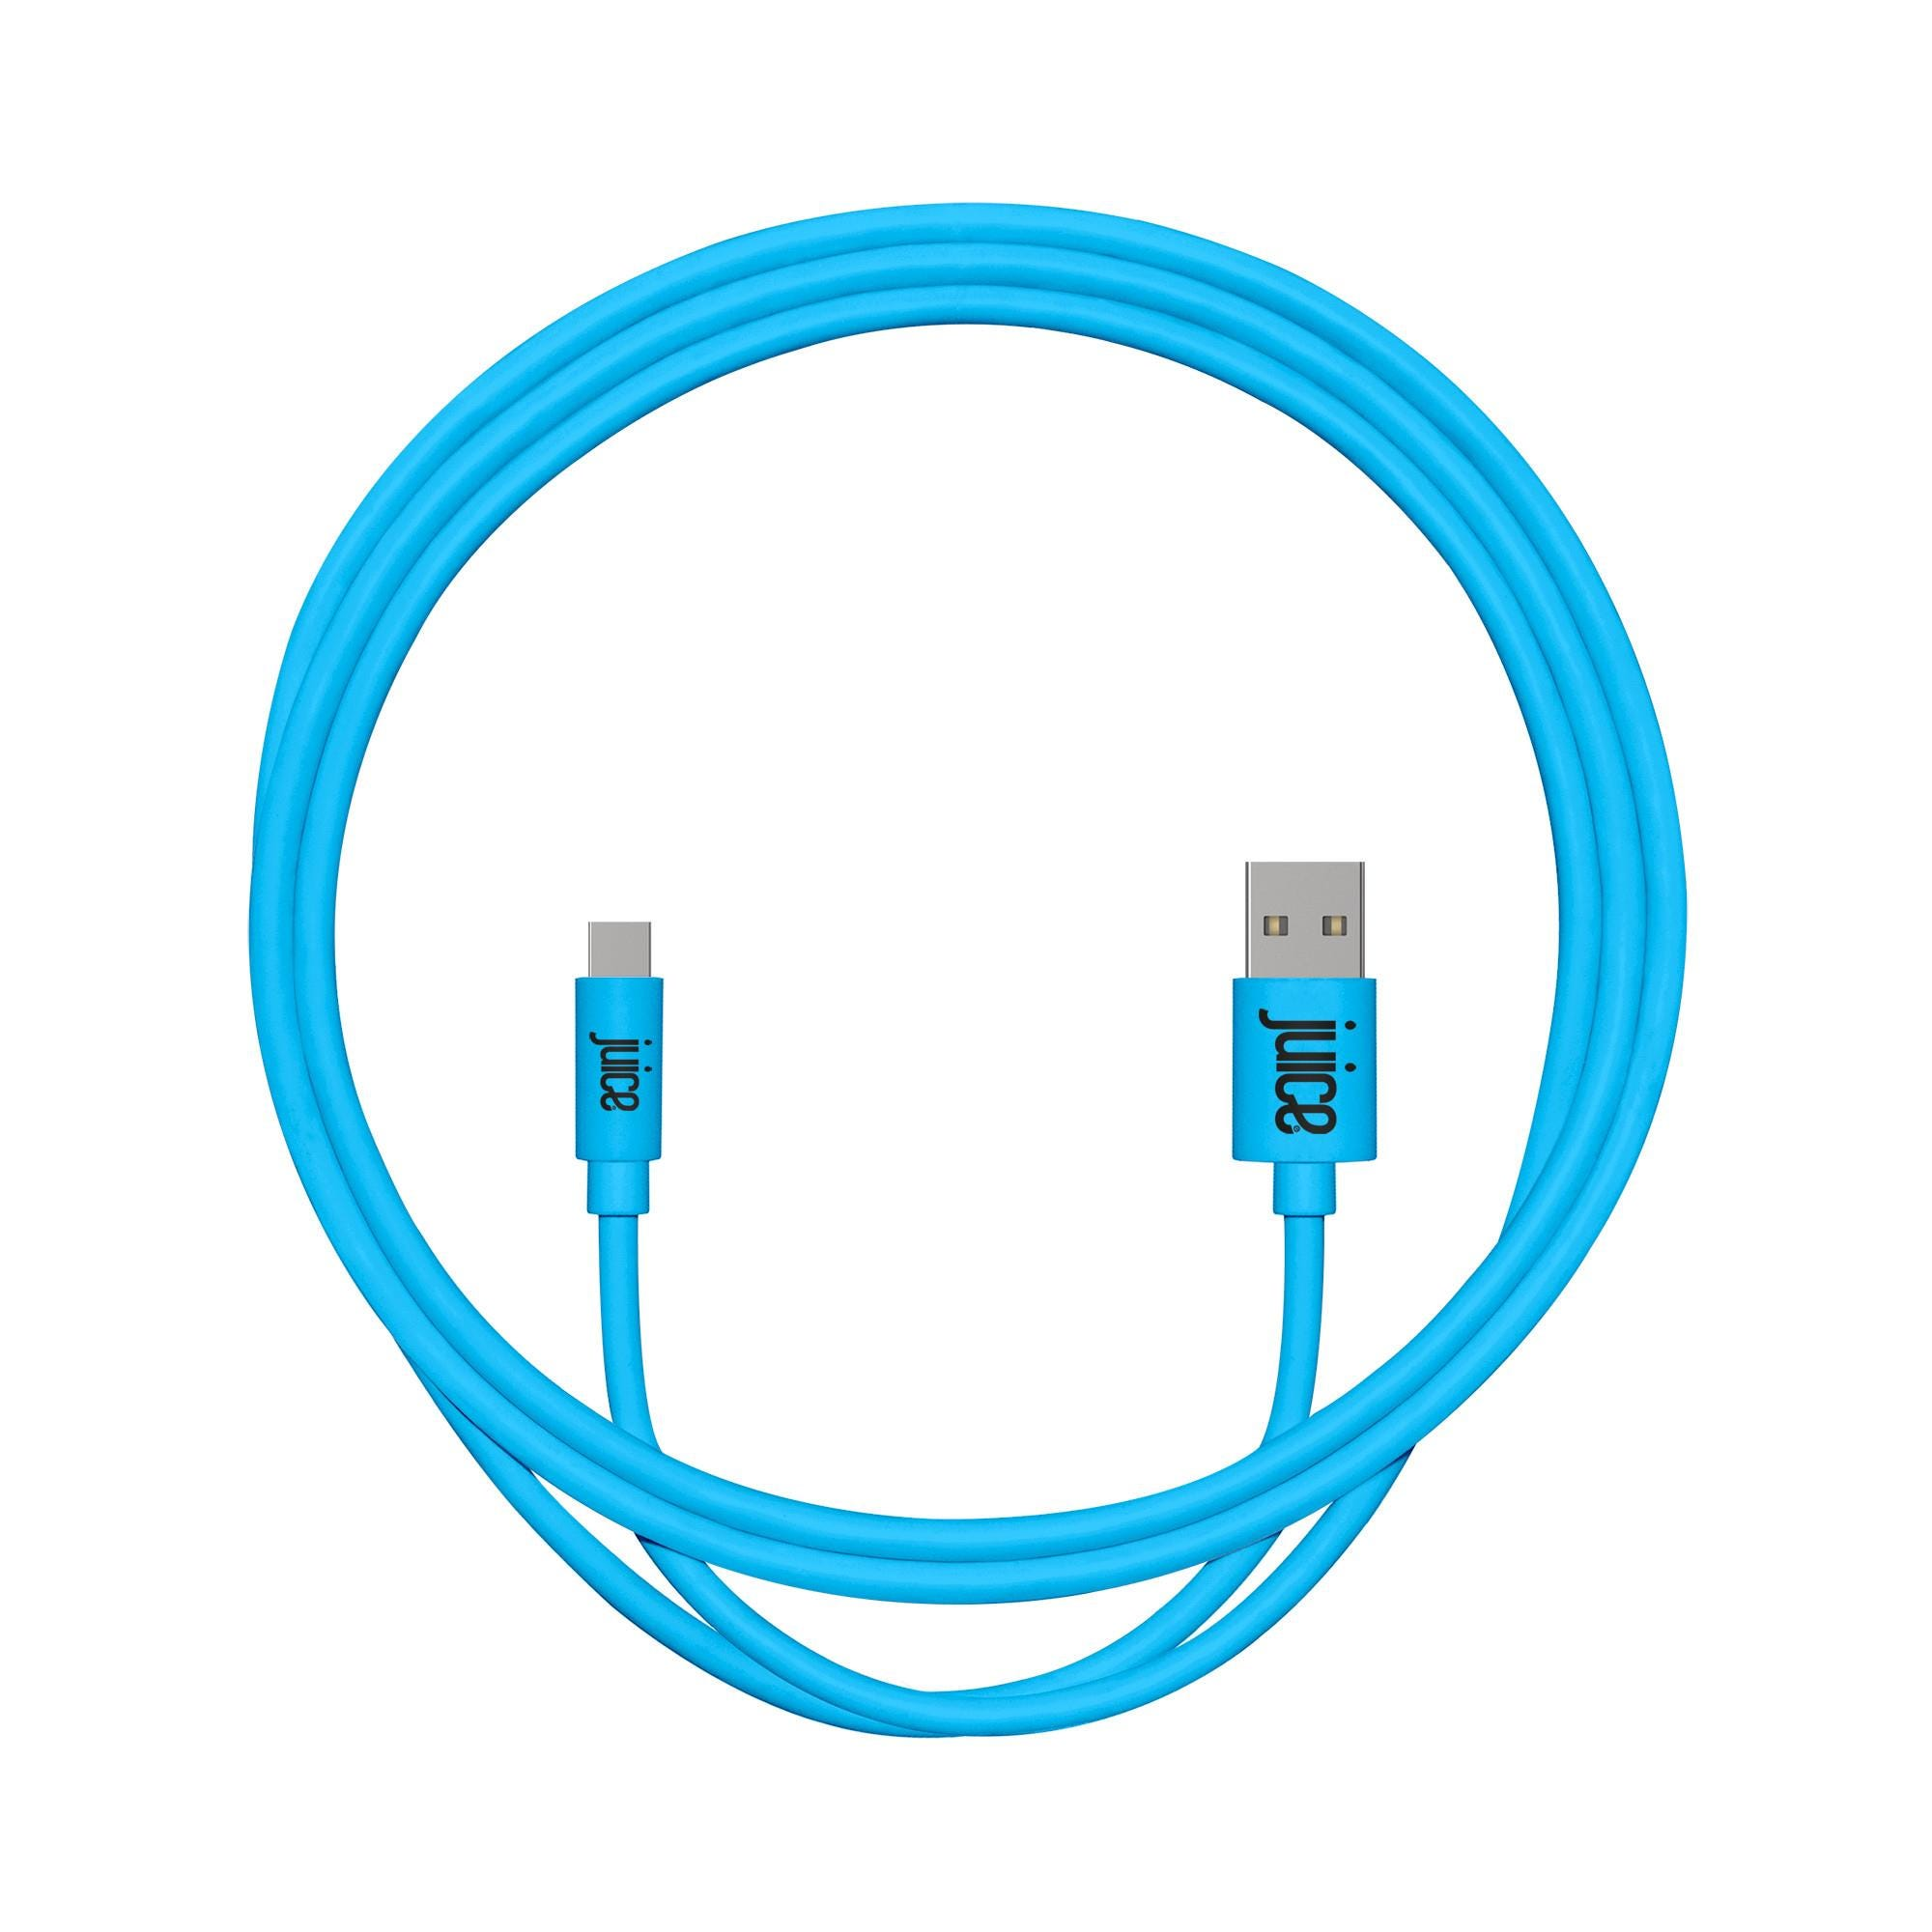 Juice USB-A to USB-C Rounded Cable (1m) - Aqua